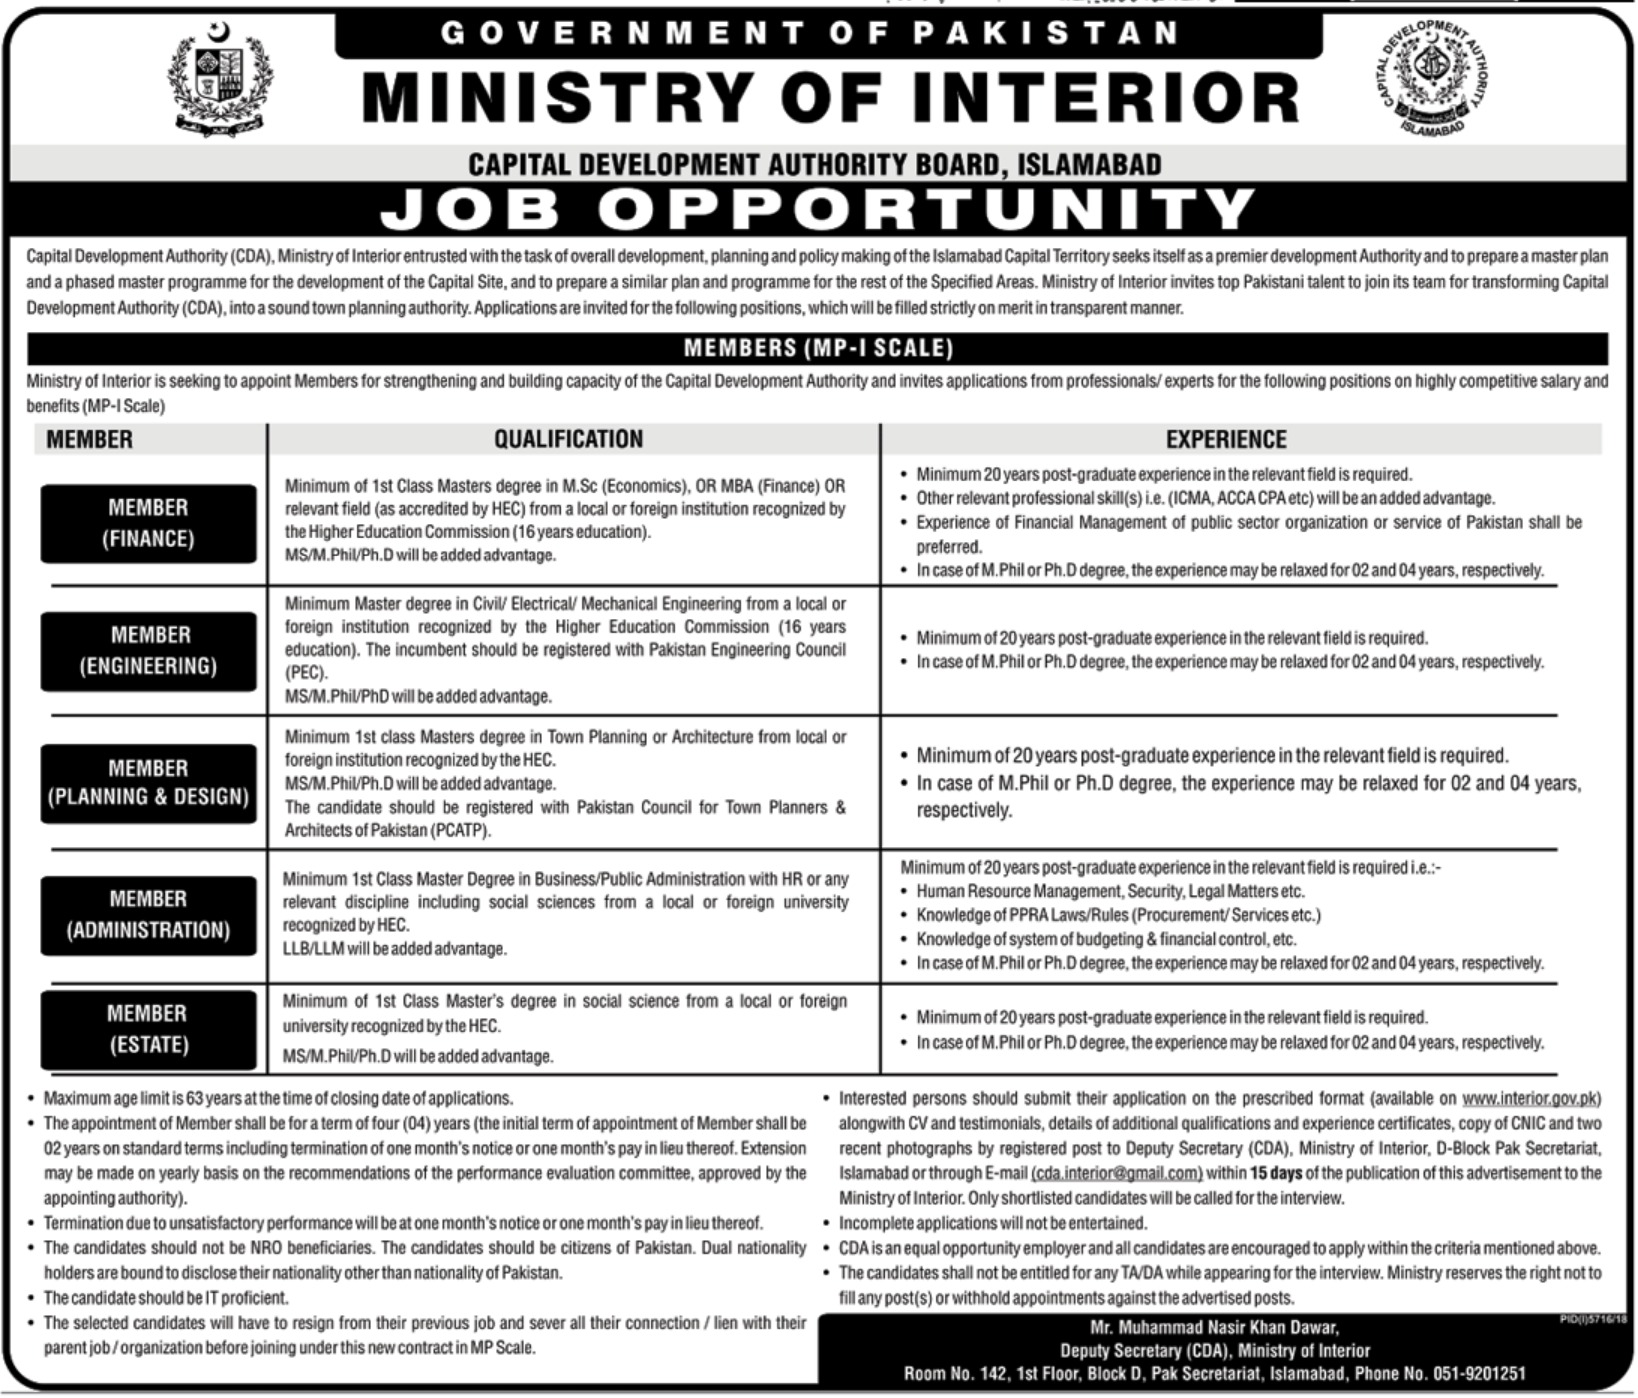 Ministry Of Interior Jobs 2019 Capital Development Authority Cda Islamabad Paperpk Jobs